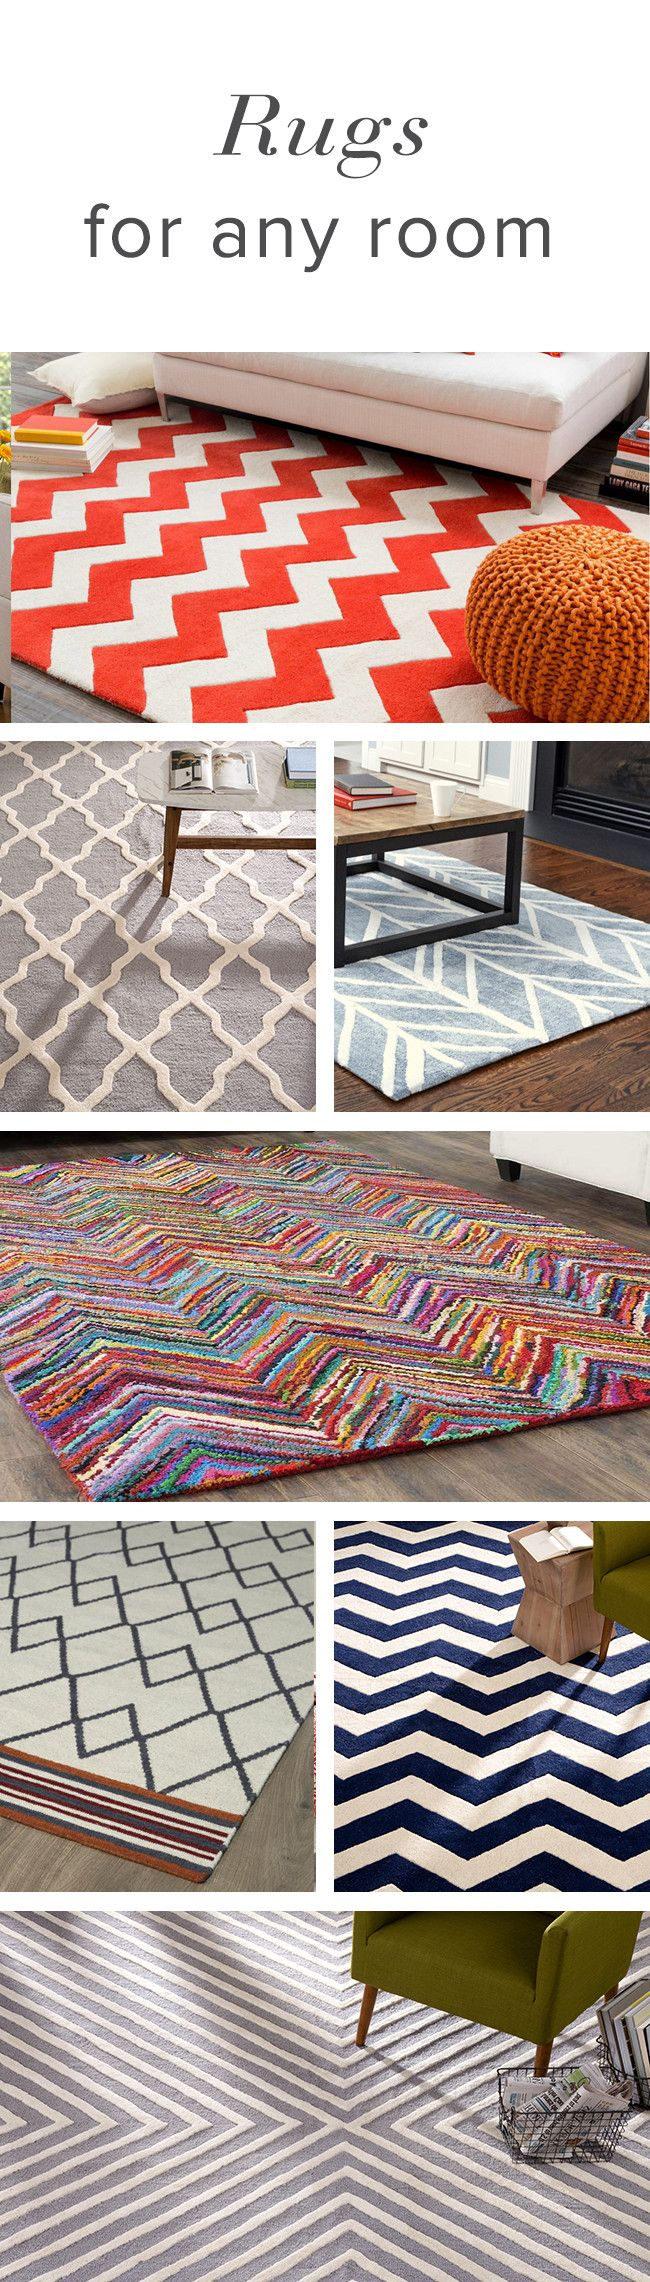 footwear clearance online Roll out the best when it comes to your home  Rugs are an easy way to update any room  whether it  39 s a touch of texture or a pop of color and pattern  Shop AllModern today and sign up for exclusive deals on rugs at up to 65  off every day